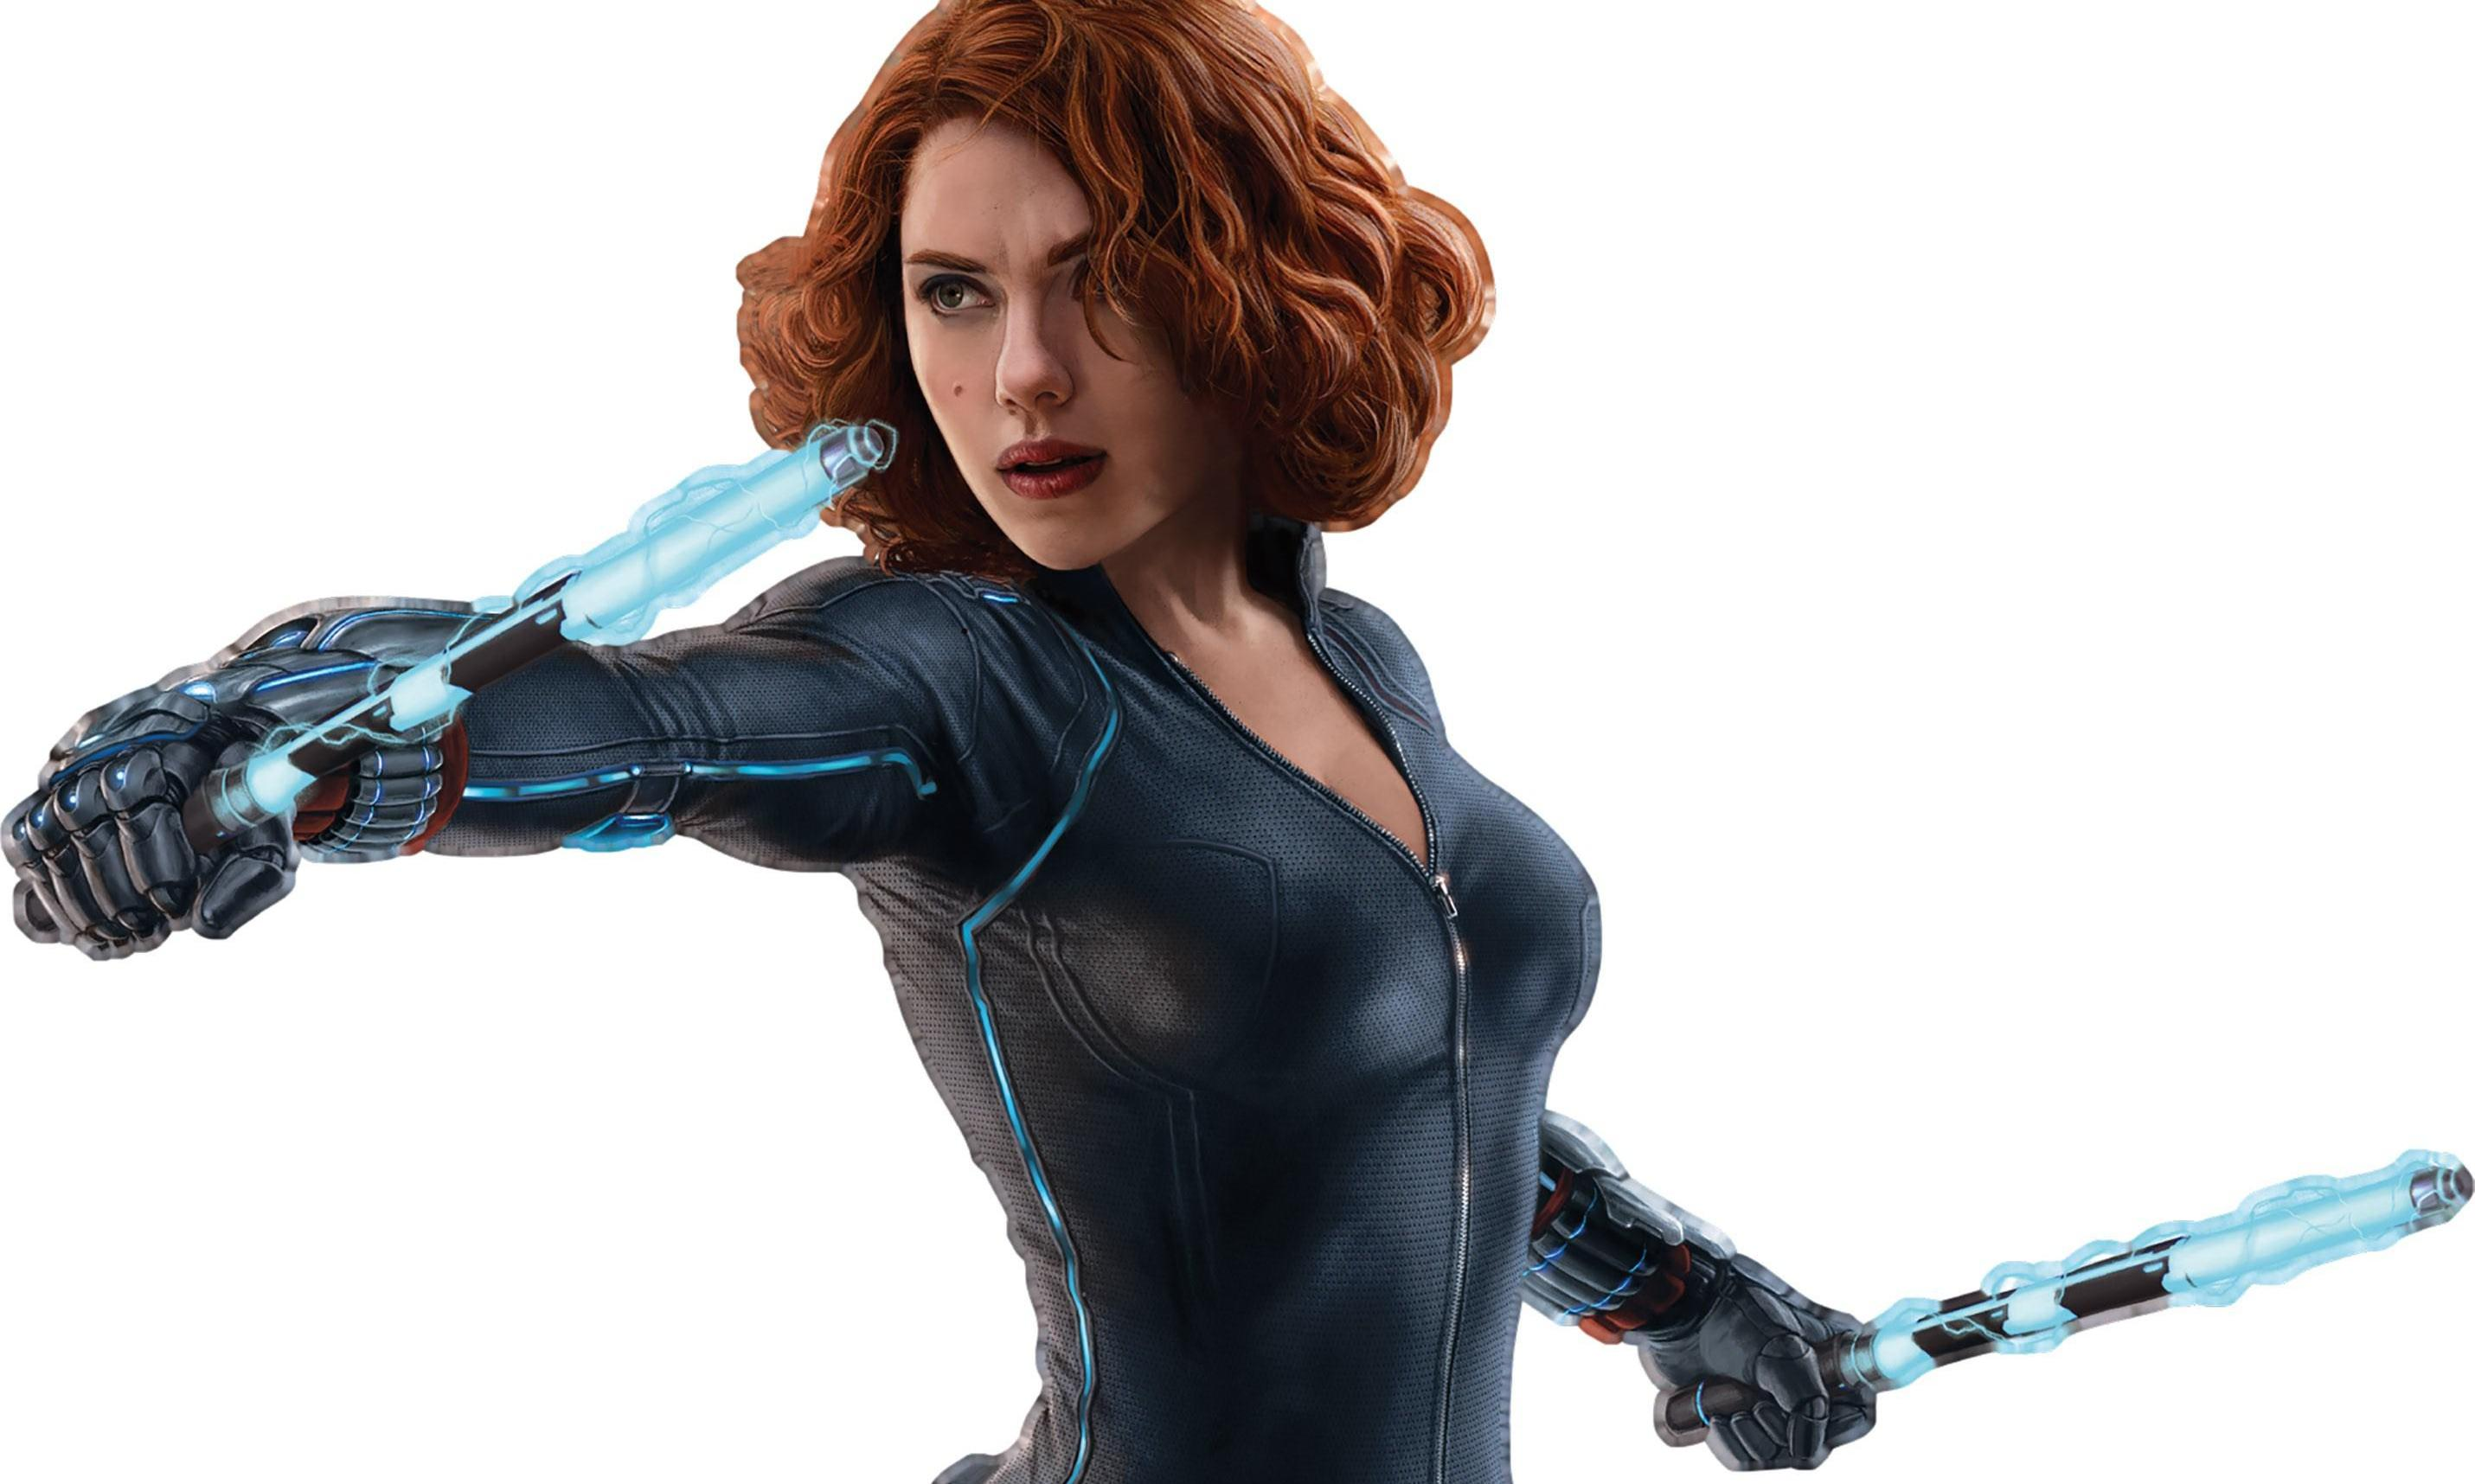 Marvel must work a miracle with Scarlett Johansson's Black Widow